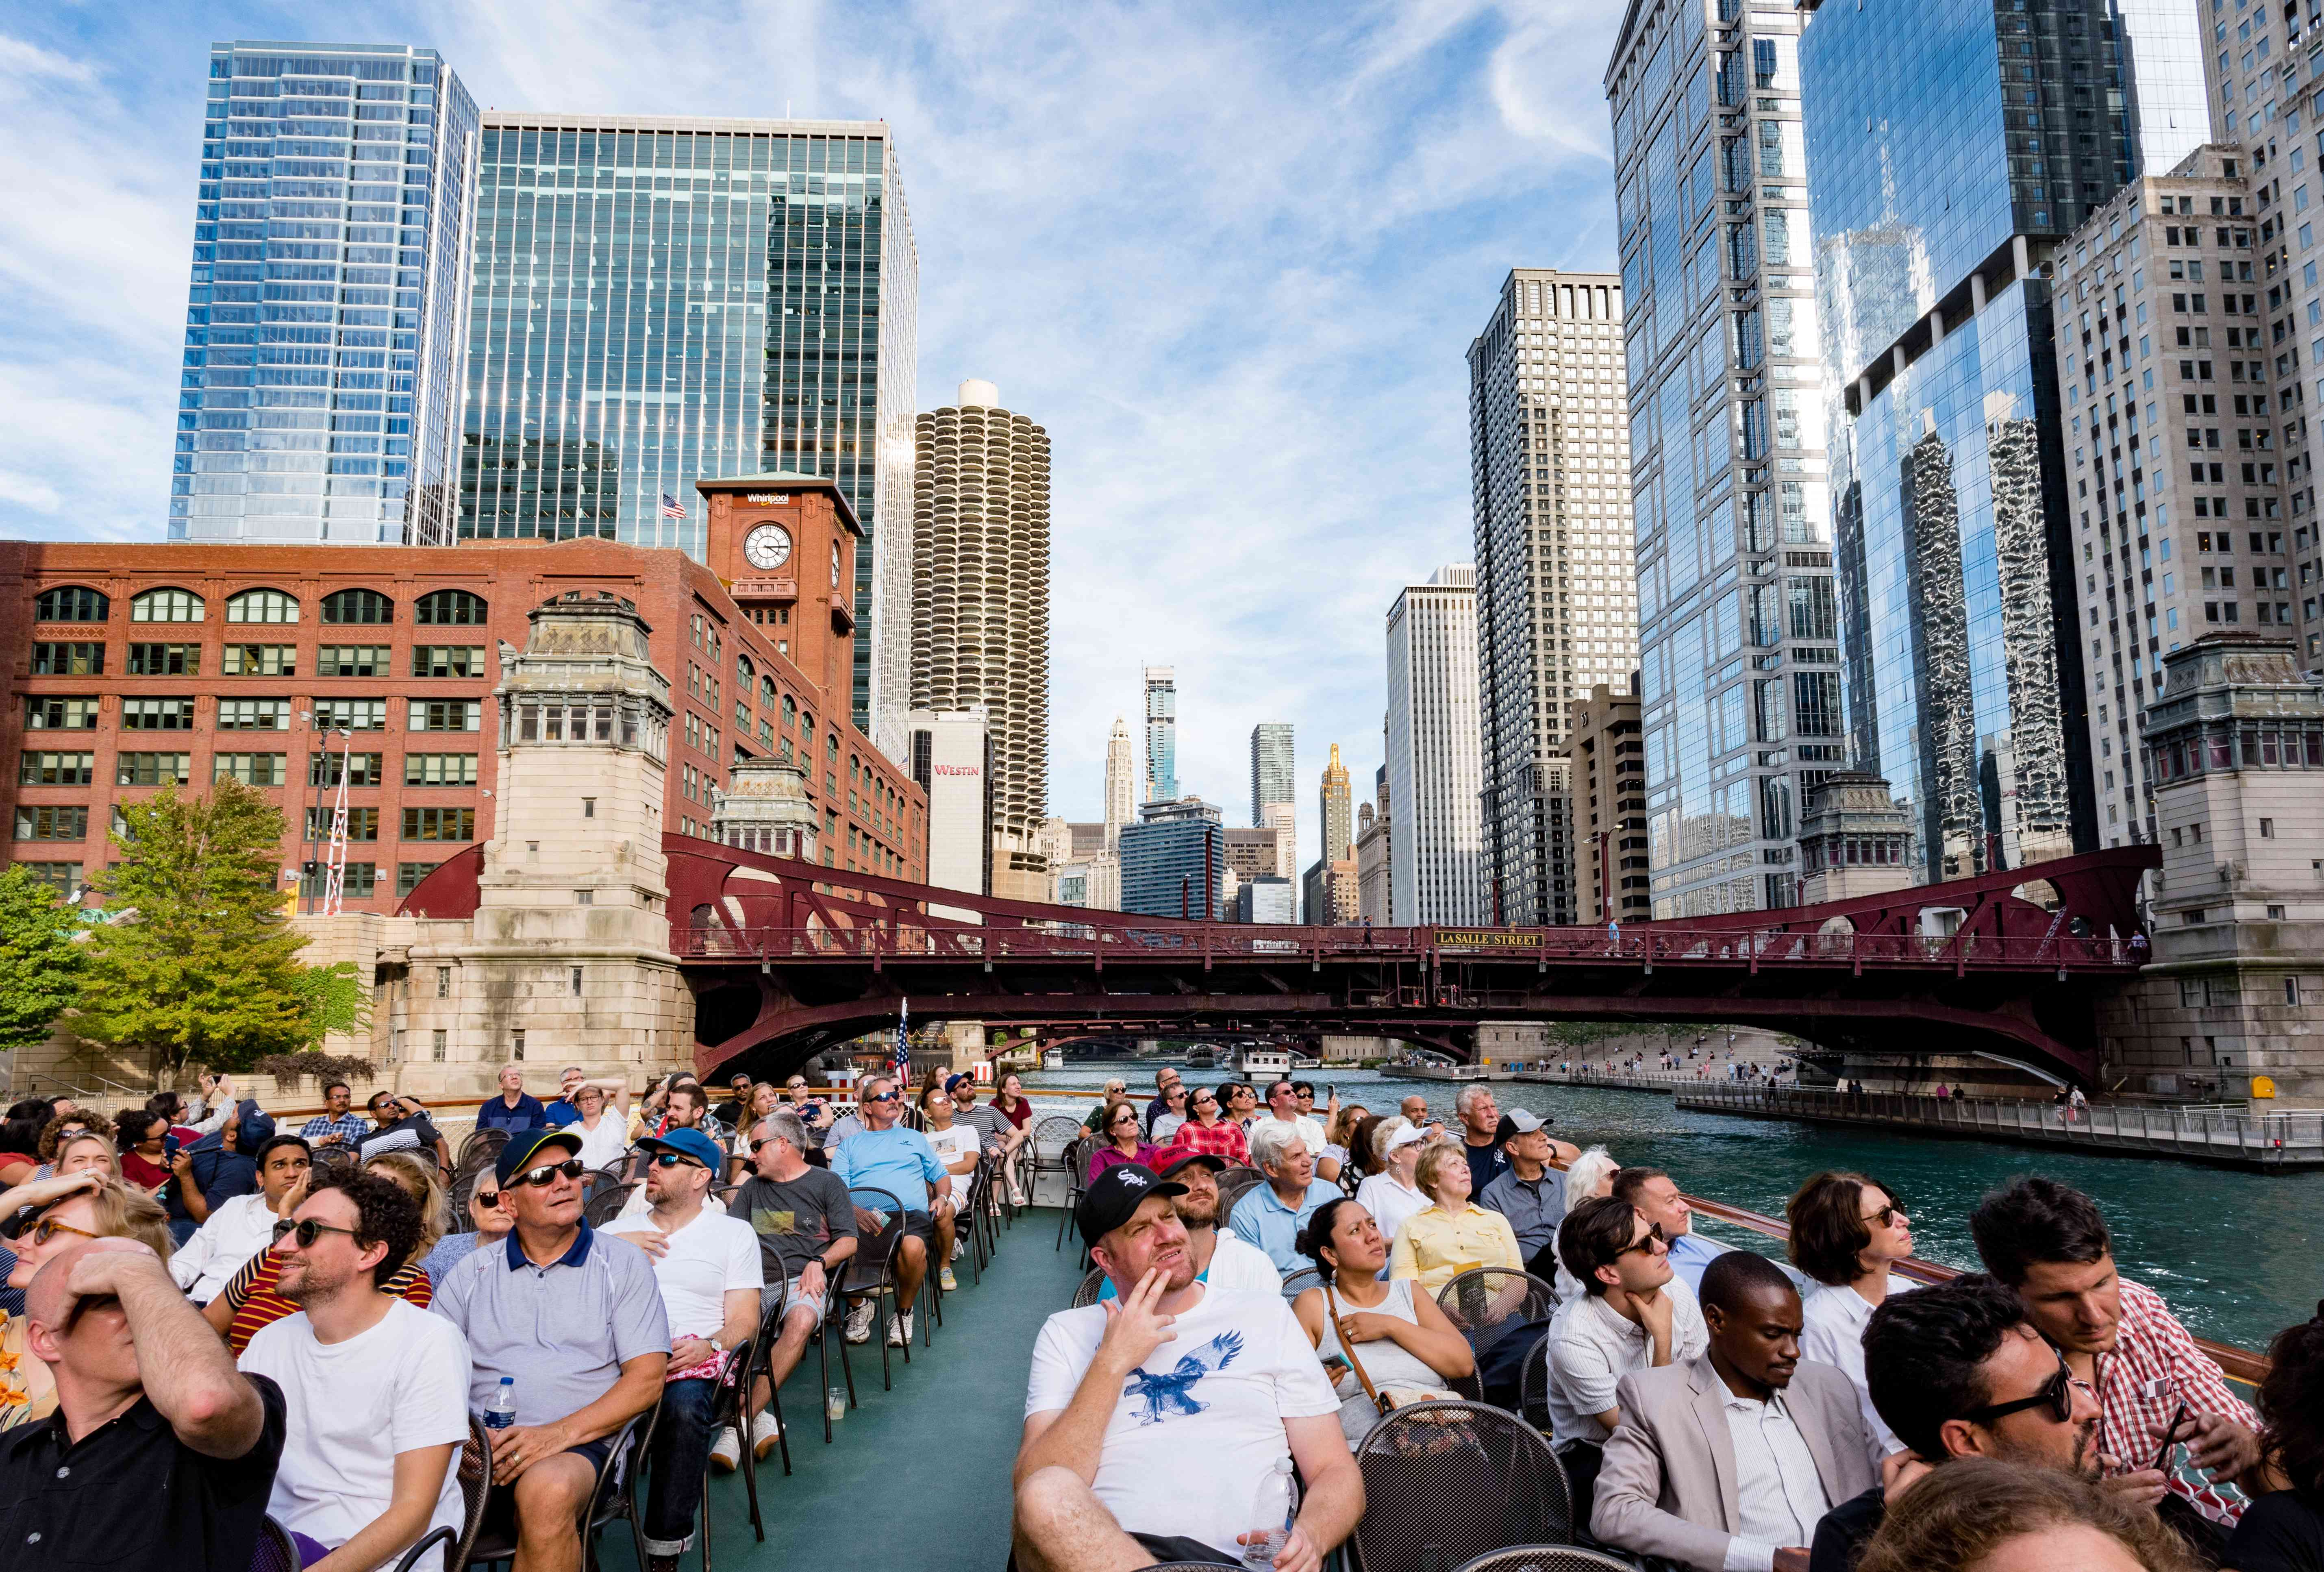 People on an architecture cruise in Chicago